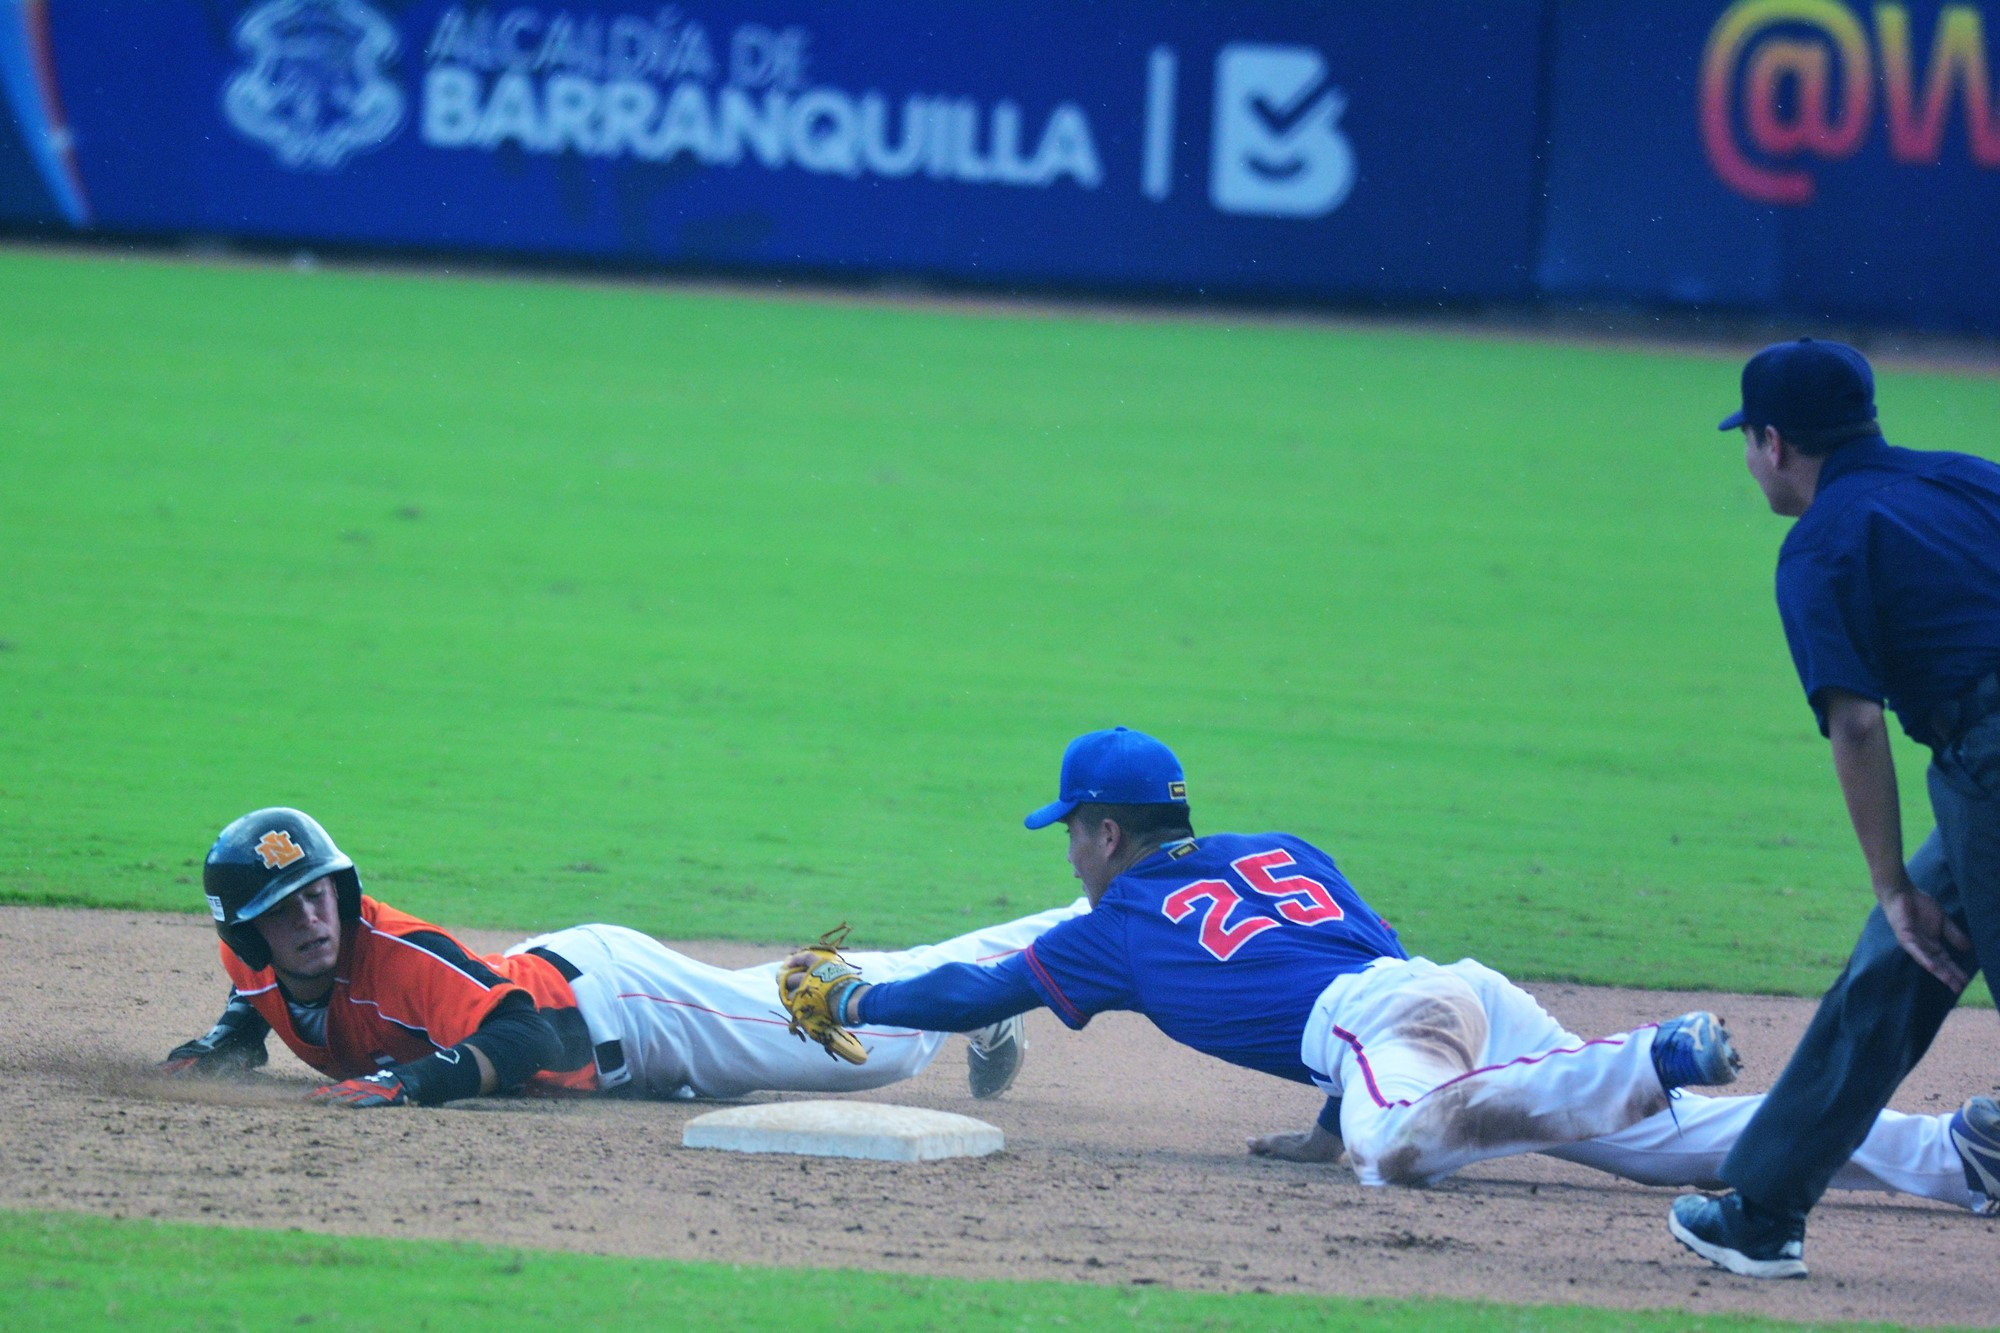 Chinese Taipei played some great defense